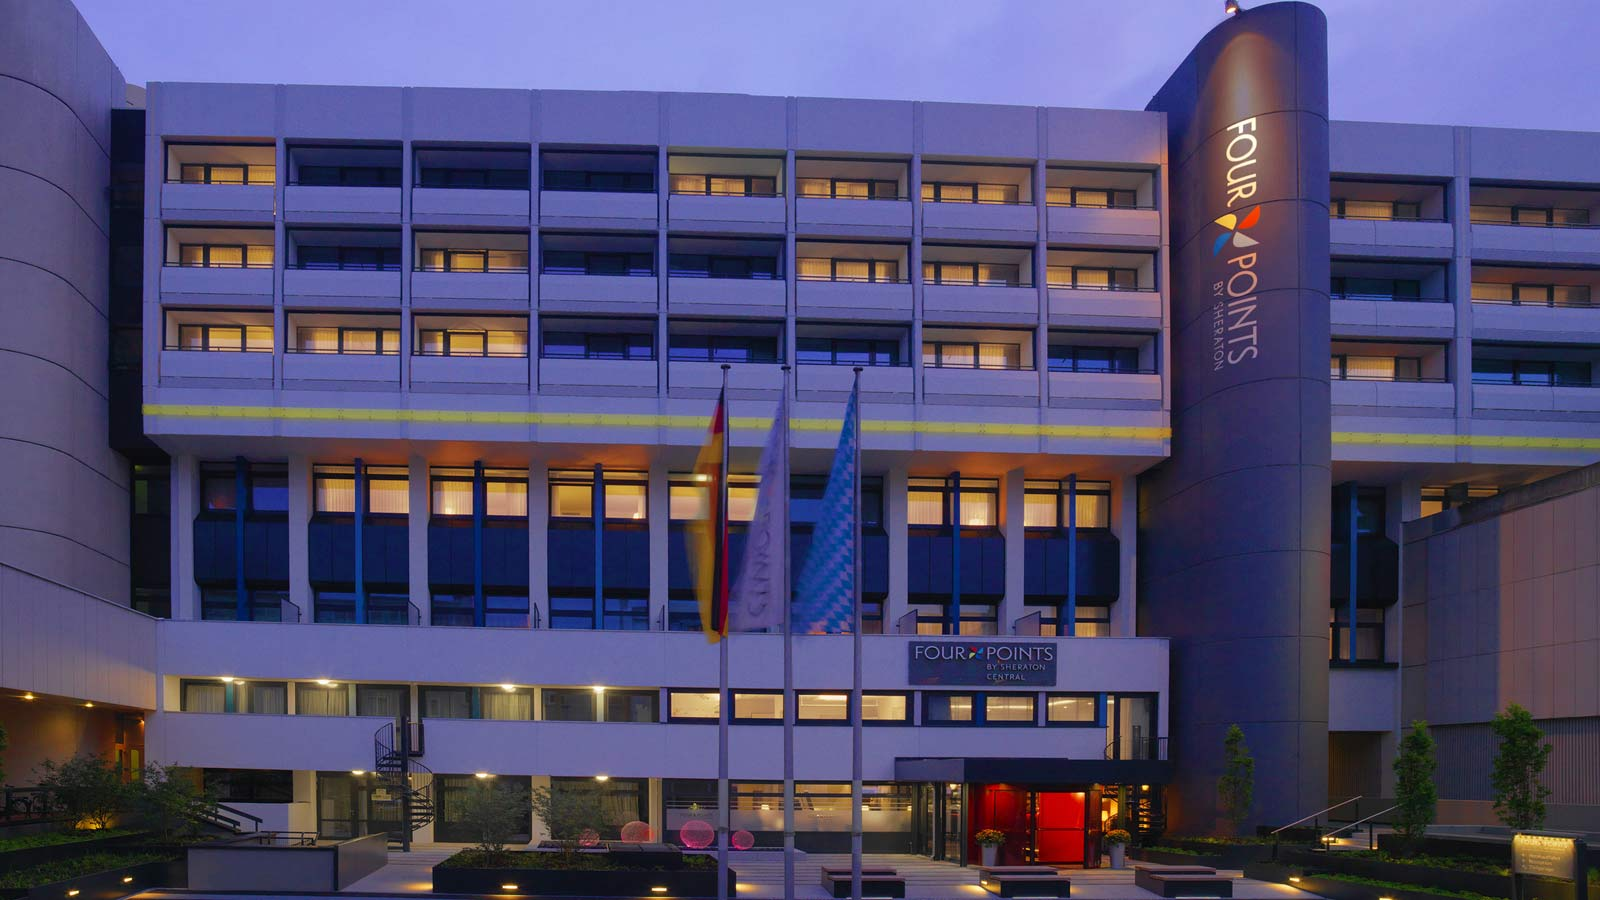 Meeting Rooms at Four Points by Sheraton Munich Central, Schwanthalerstraße 111, Munich, Germany